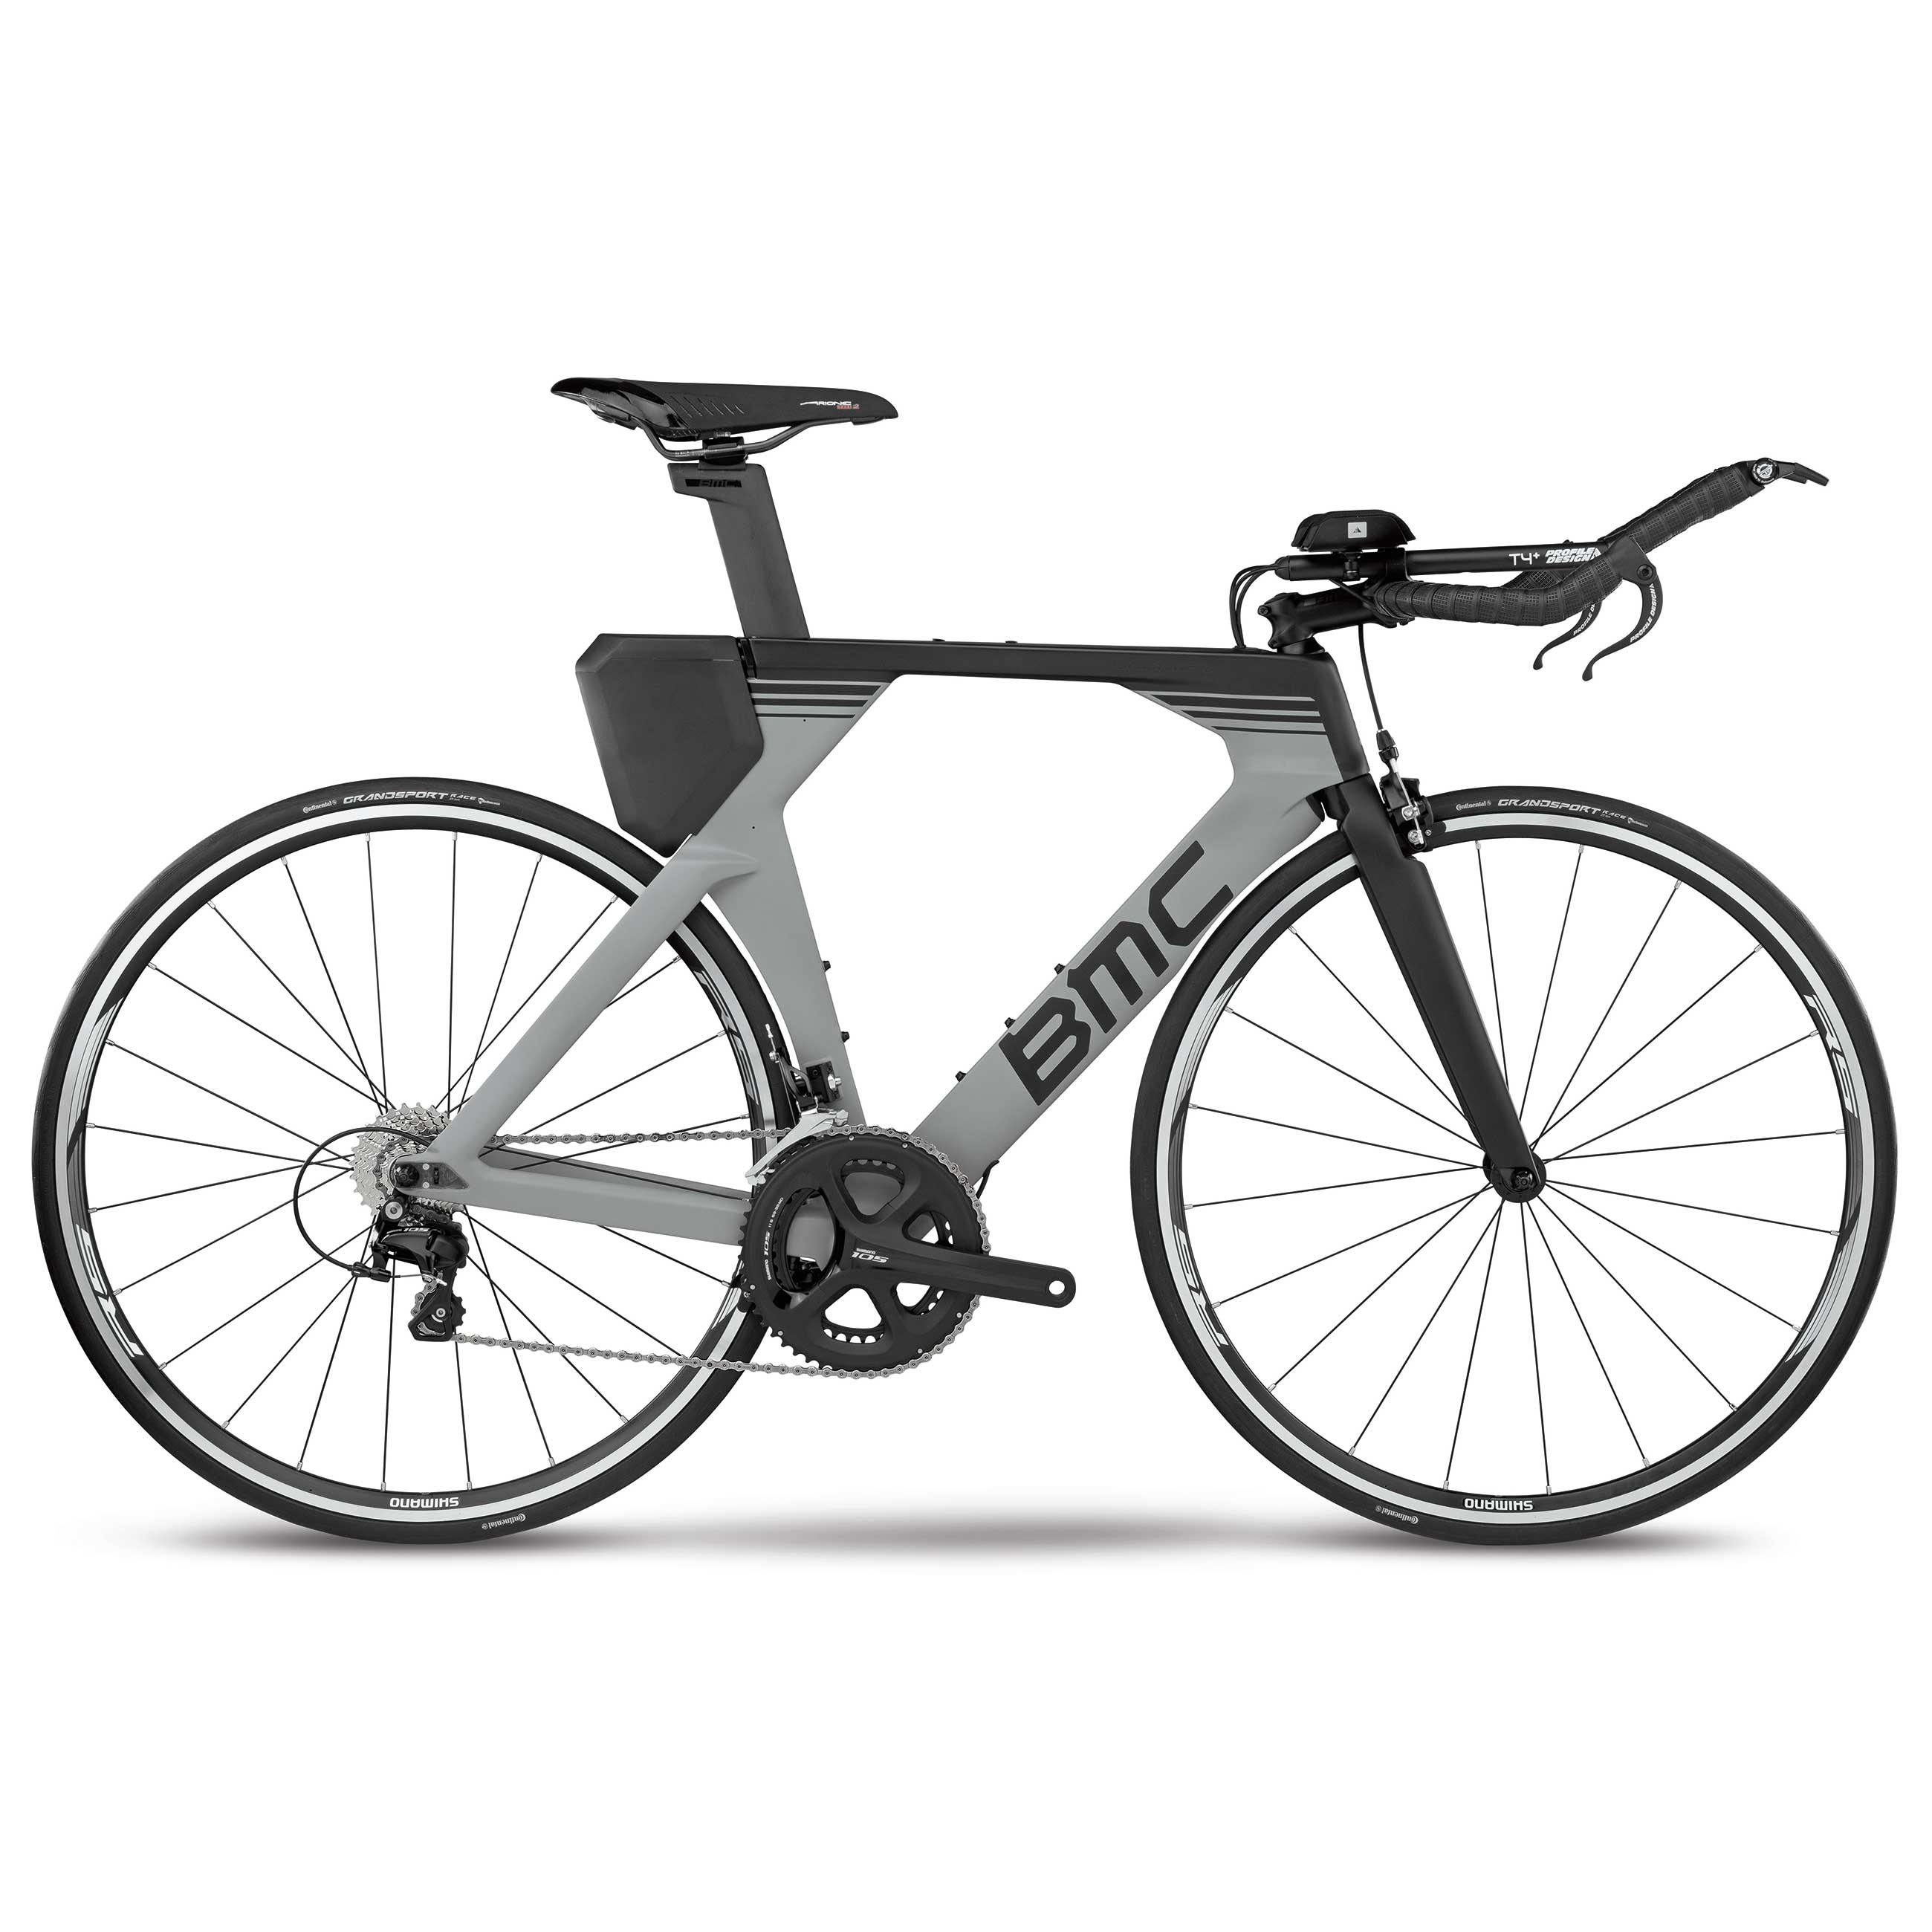 BMC Timemachine 02 THREE Shimano 105 Triathlon Bike